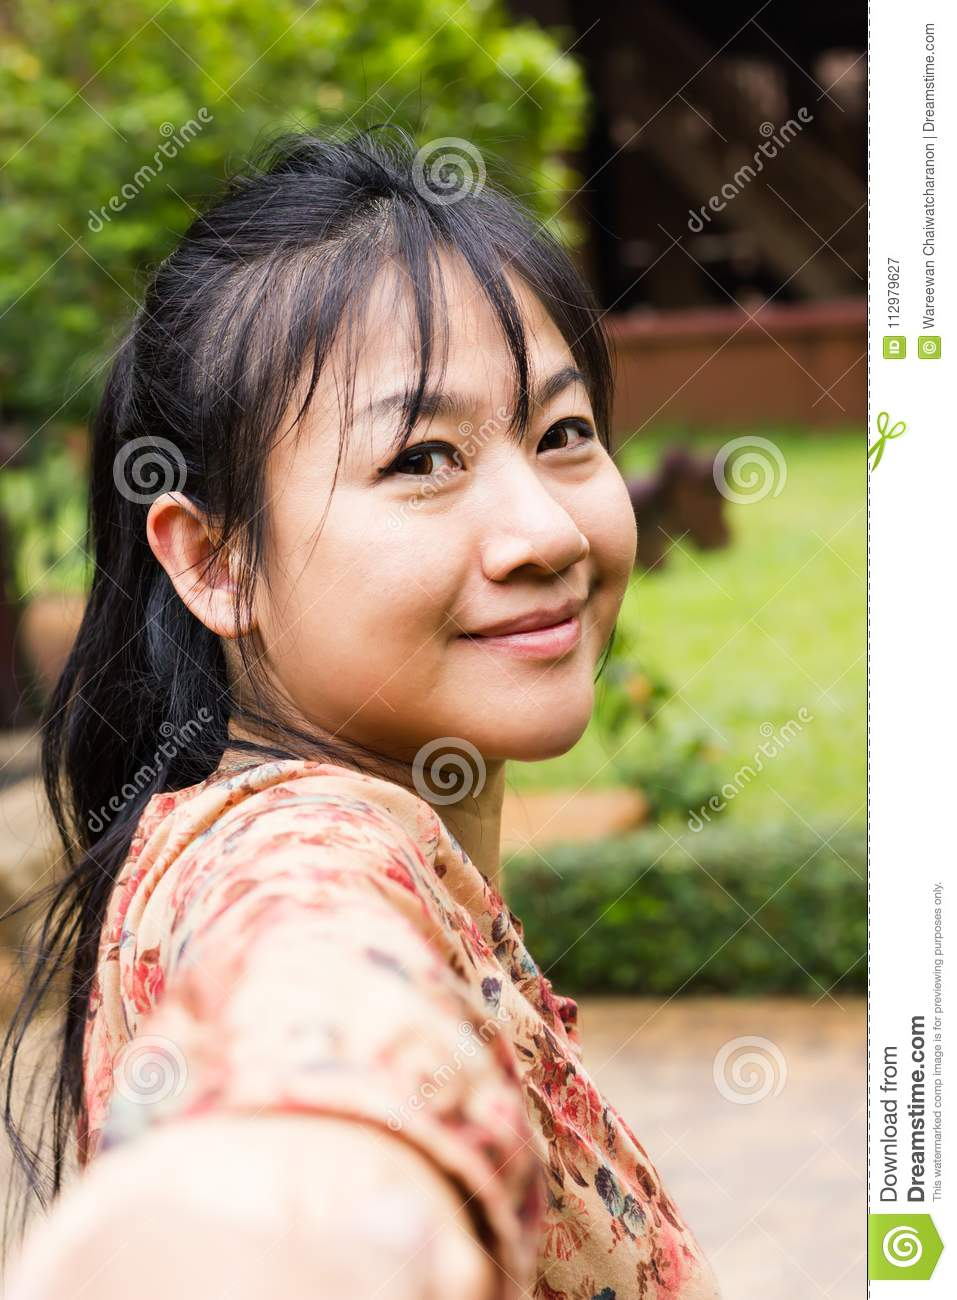 Asian women smiling, close-up face long hair Asian lady in brown